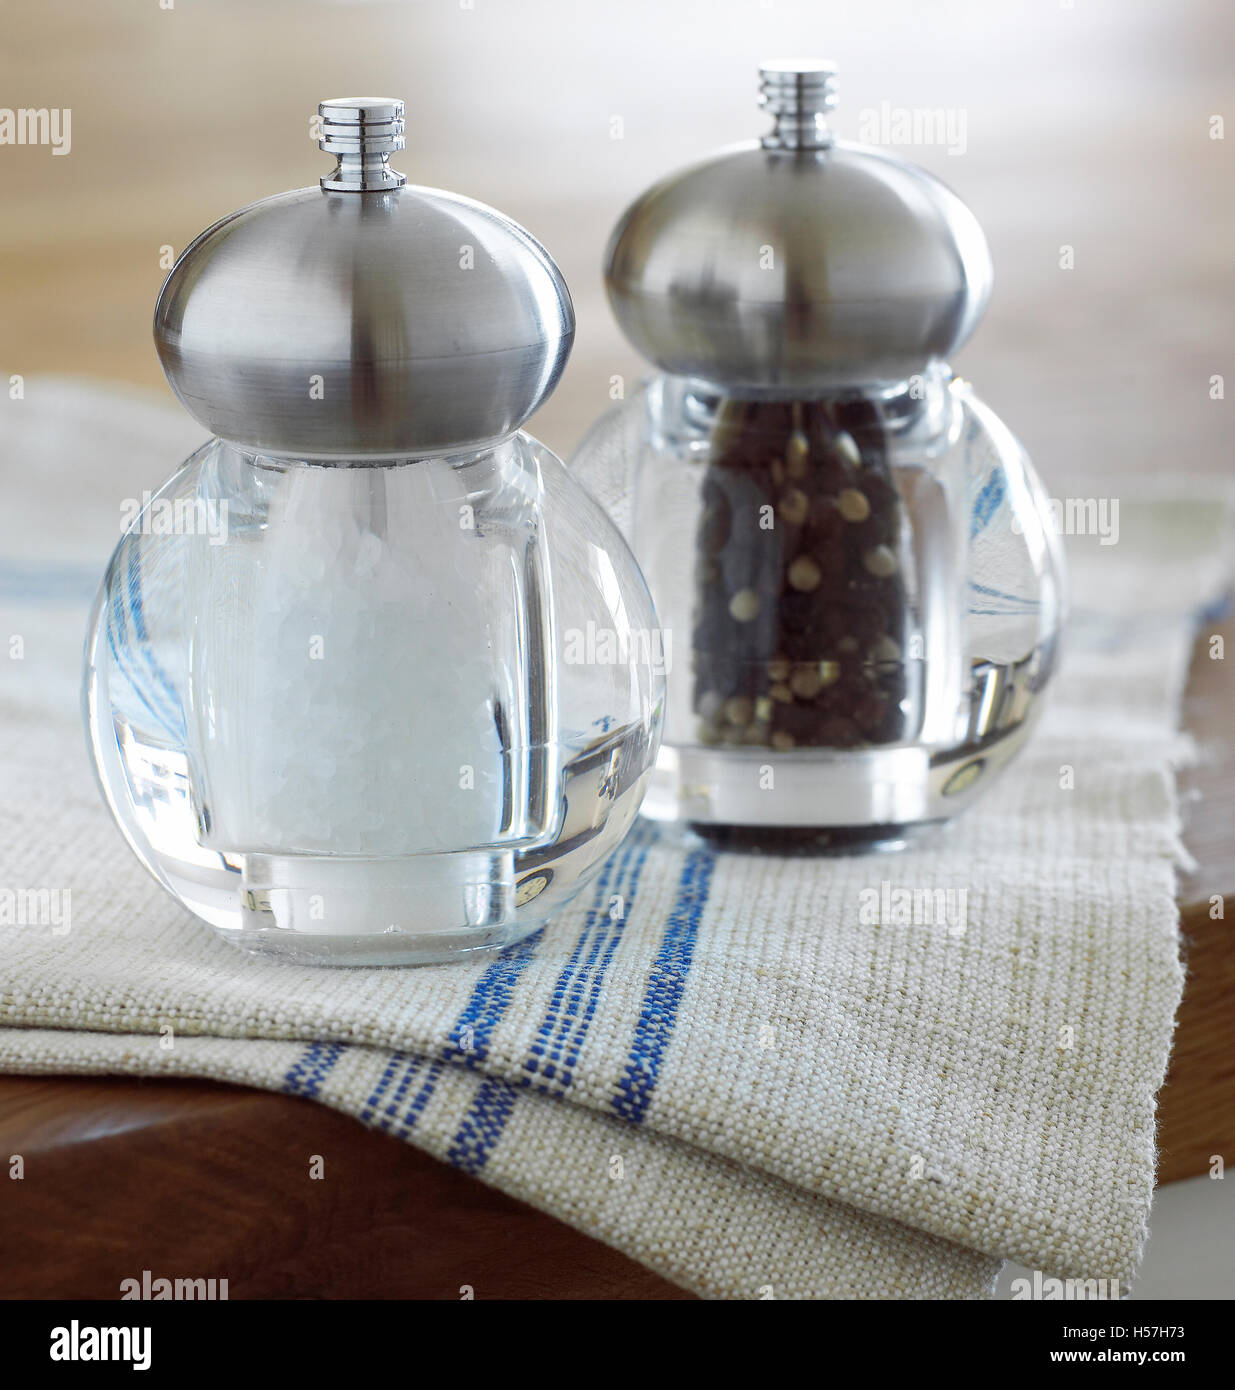 Salt and pepper mills in the kitchen. - Stock Image